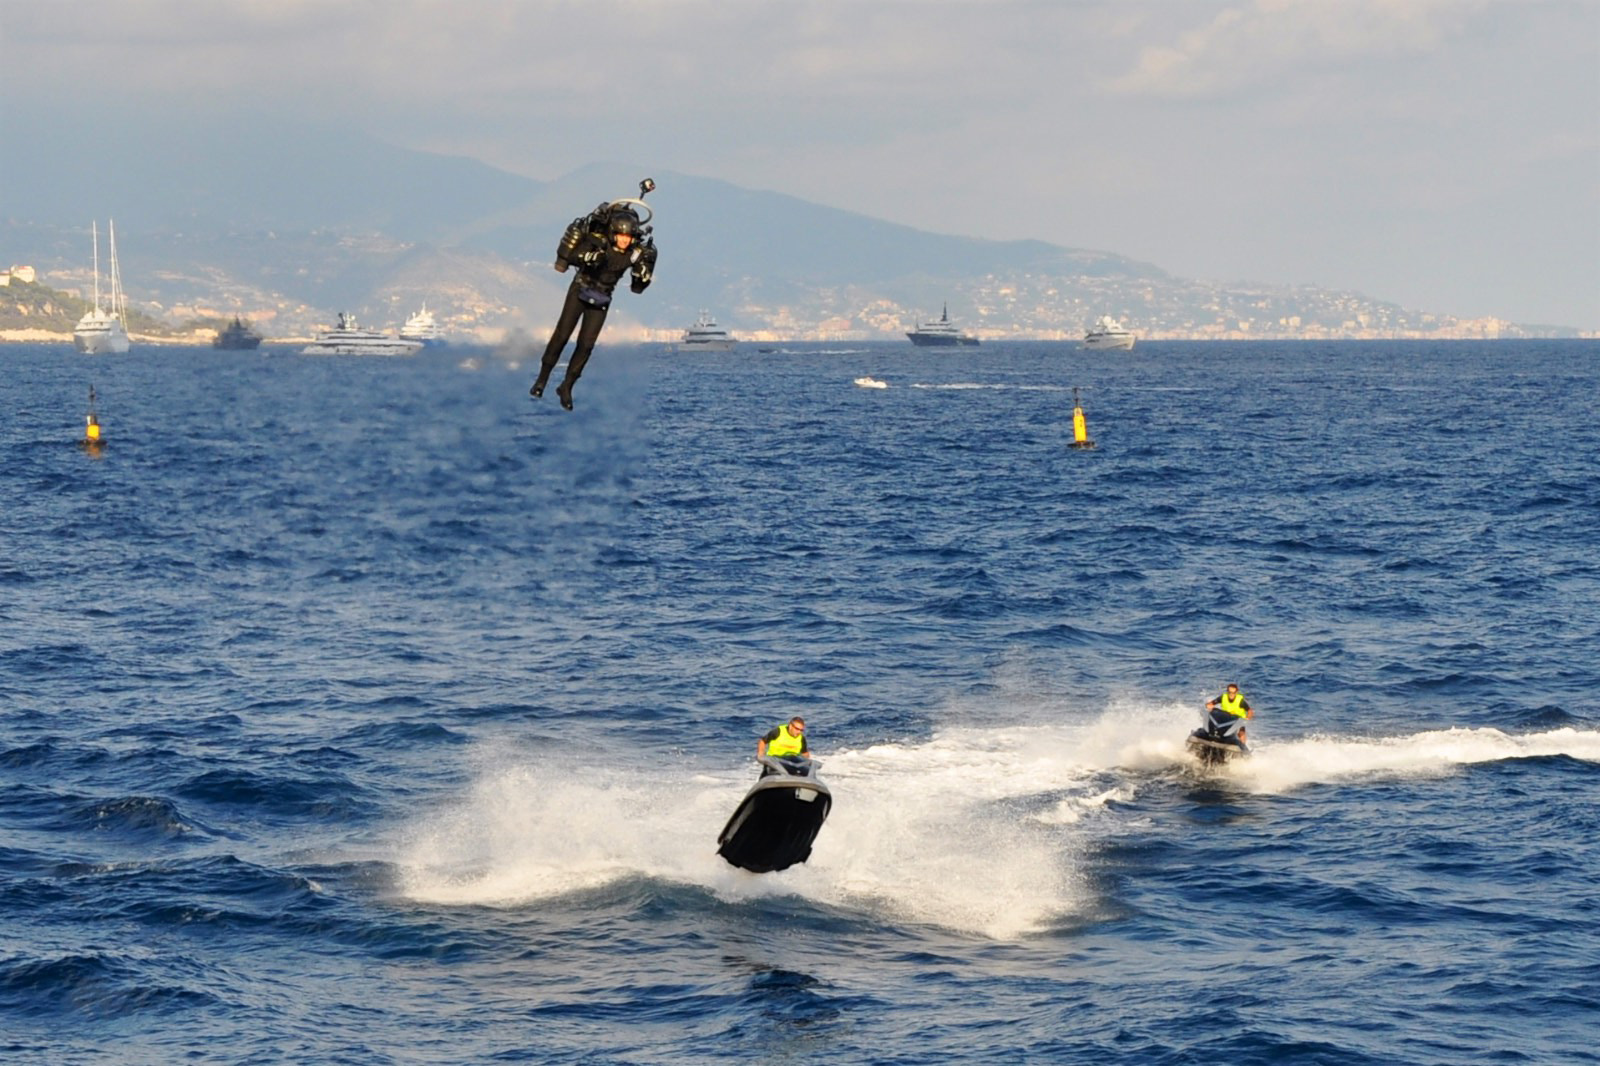 Mayman flew over jet skis in Monaco in 2016, and noted that the JB-10, if allowed to reach its maximum potential speed, could easily outpace nearly all watercraft at 100 mph or more.